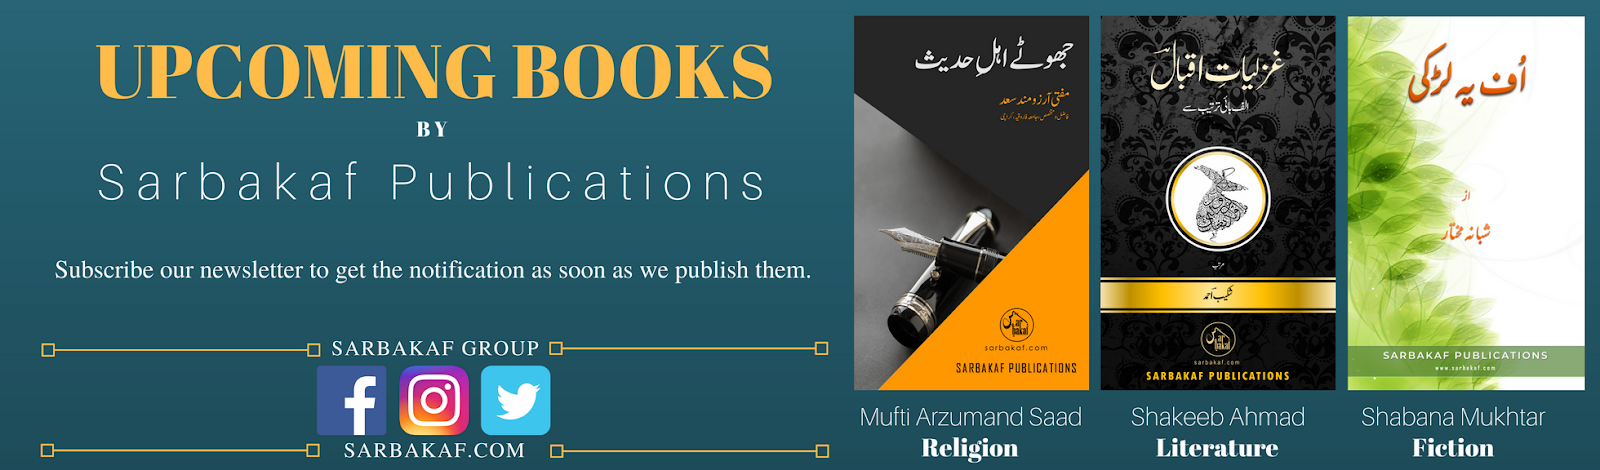 Upcoming books by sarbakaf publications